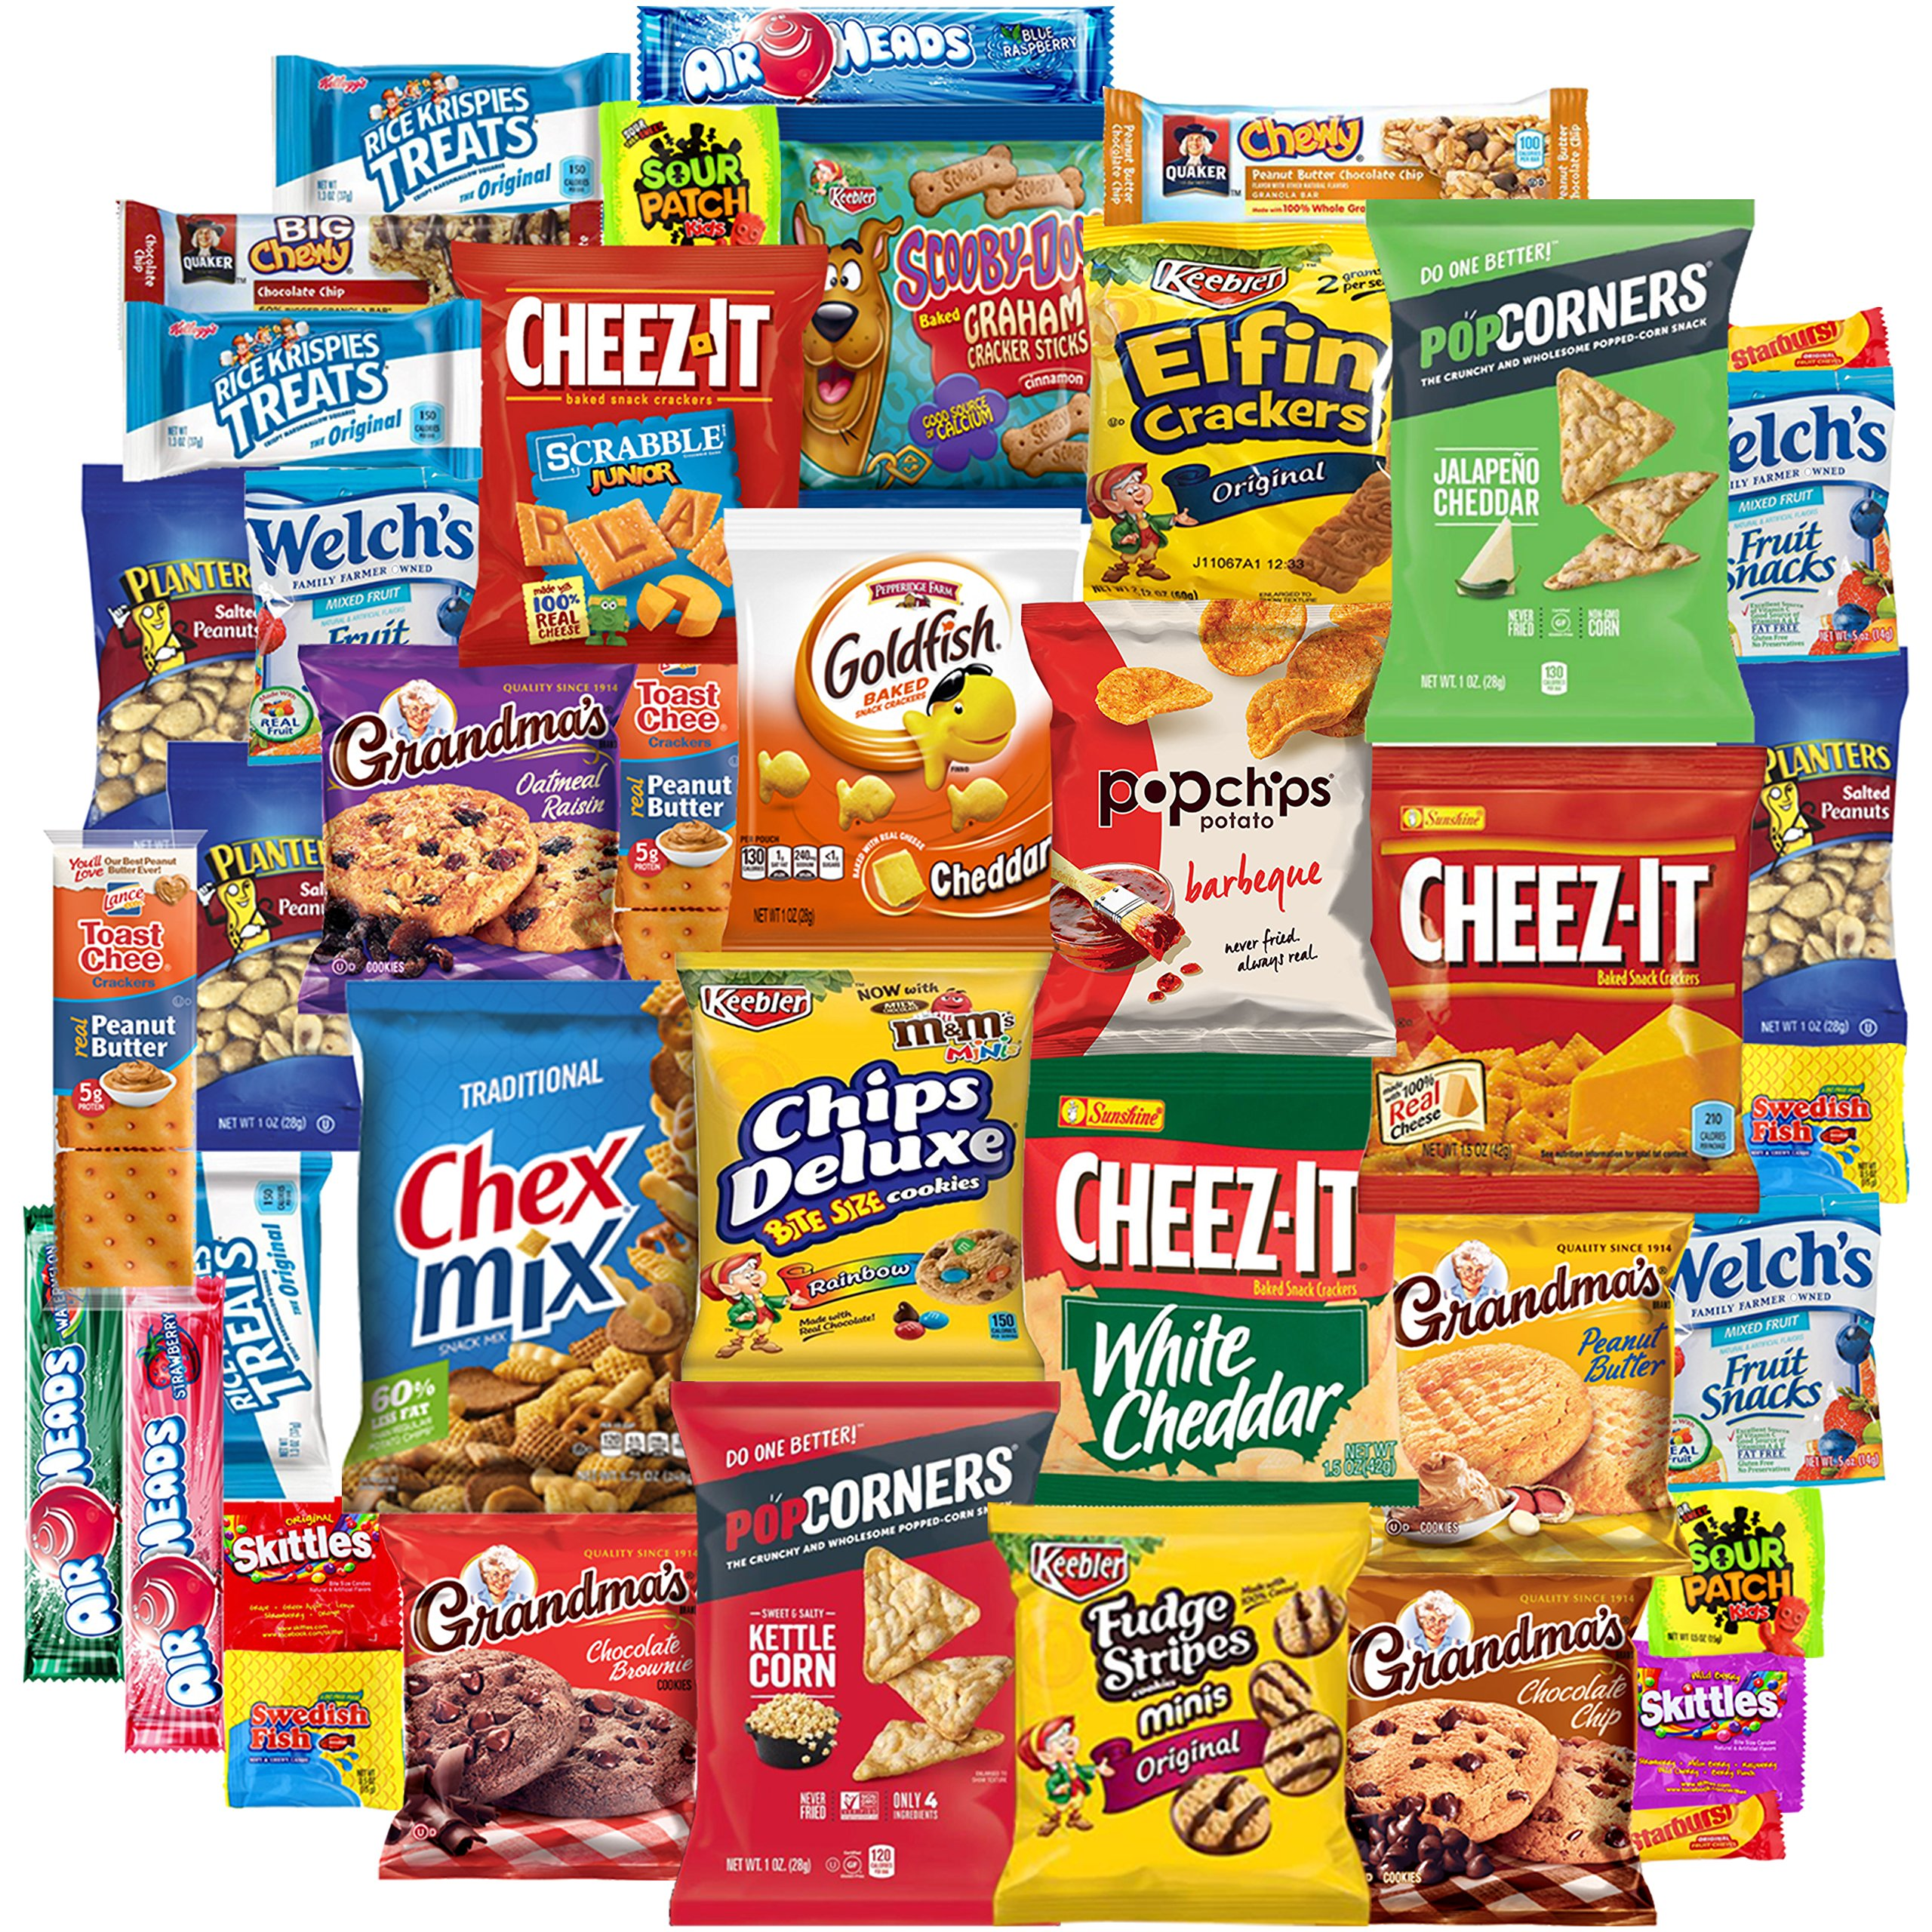 Snack Chest Mix Set of Snacks, Chips, Cookies, Candies and Crackers Care Package, Good Mix of Treats for Everybody (40 Count)